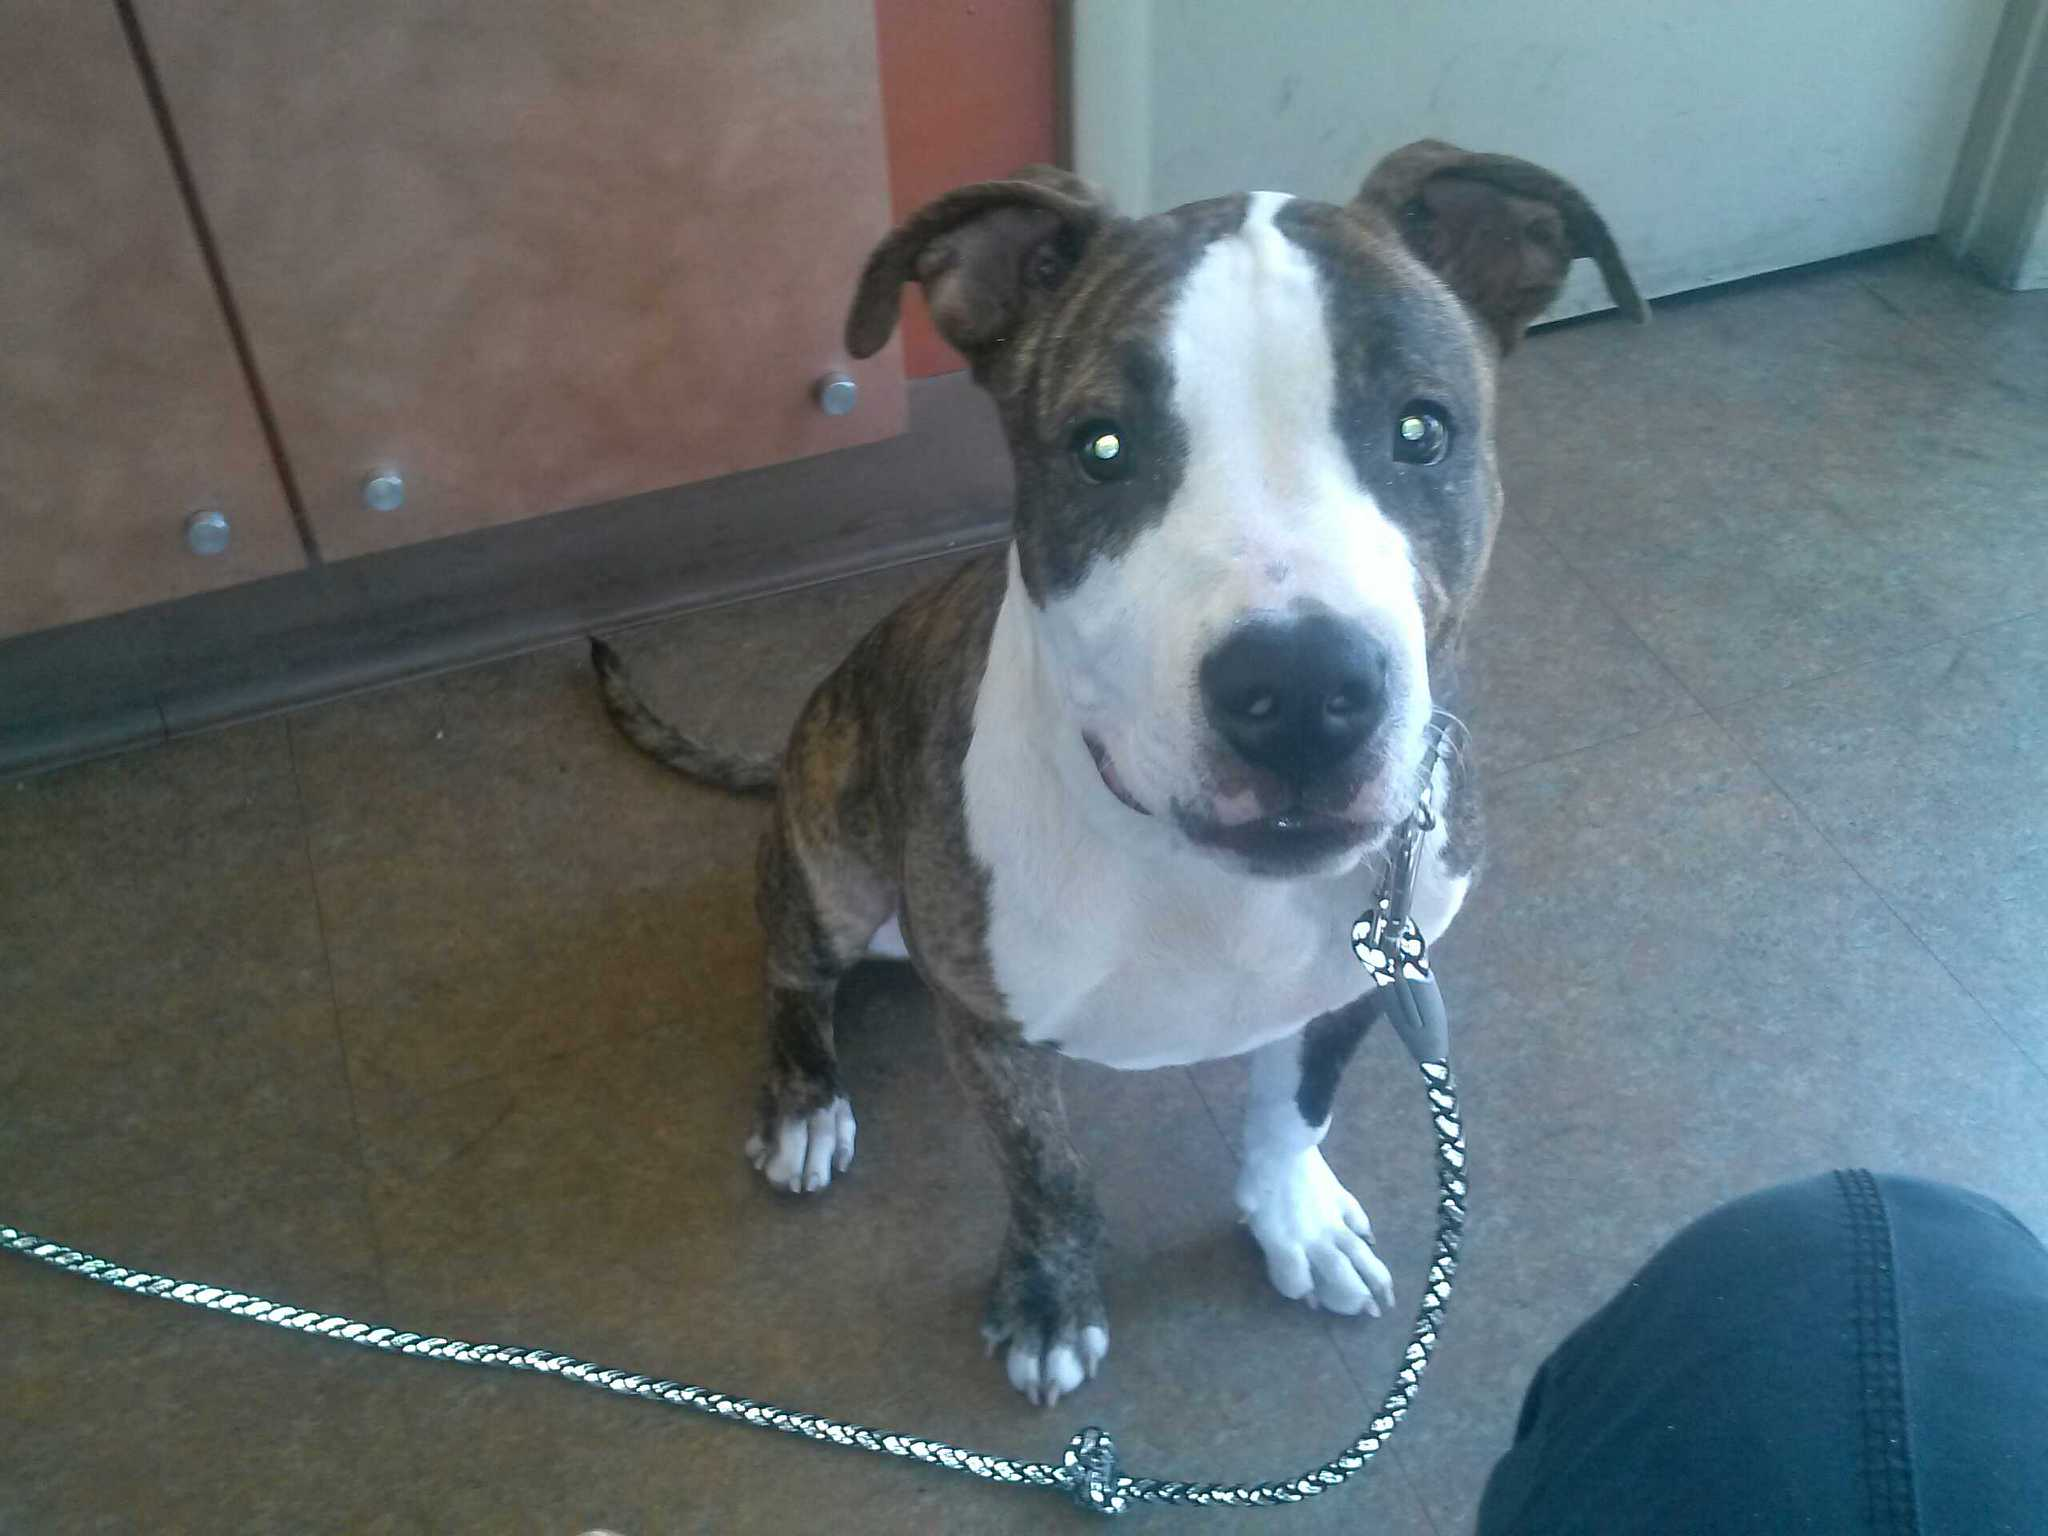 Gallery images and information boxer great dane pitbull mix